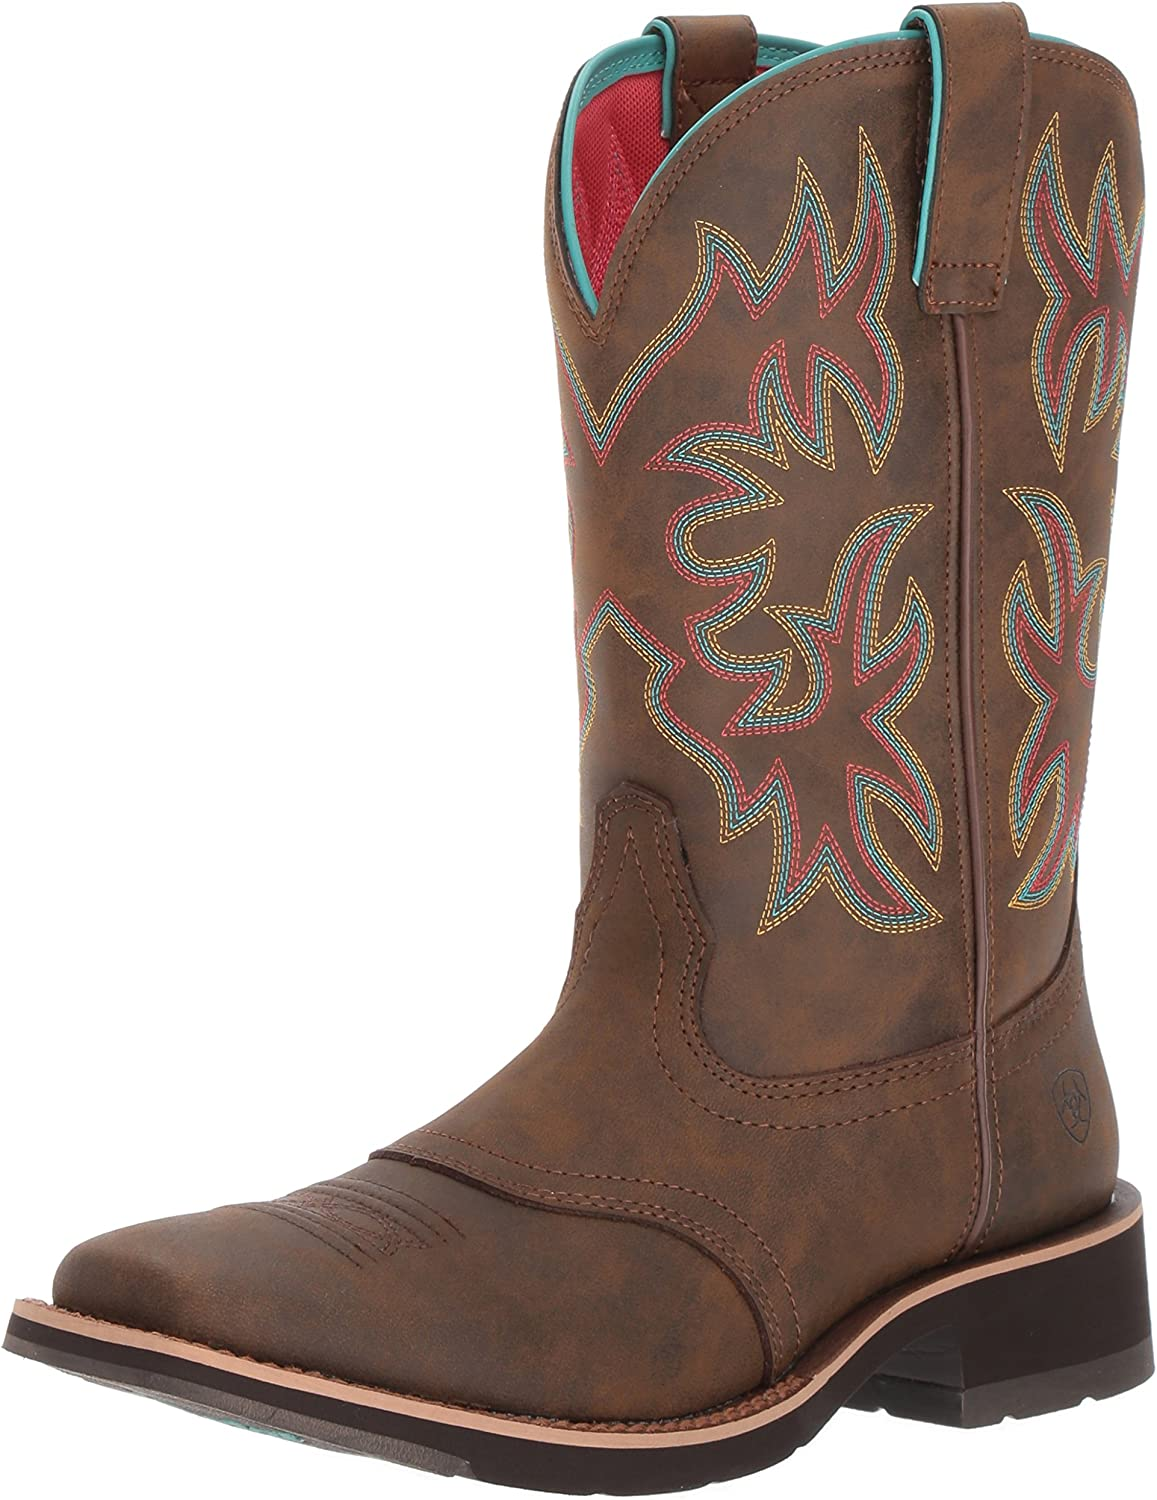 Ariat Delilah Western Boots - Women's Leather Square Toe Cowgirl Boot